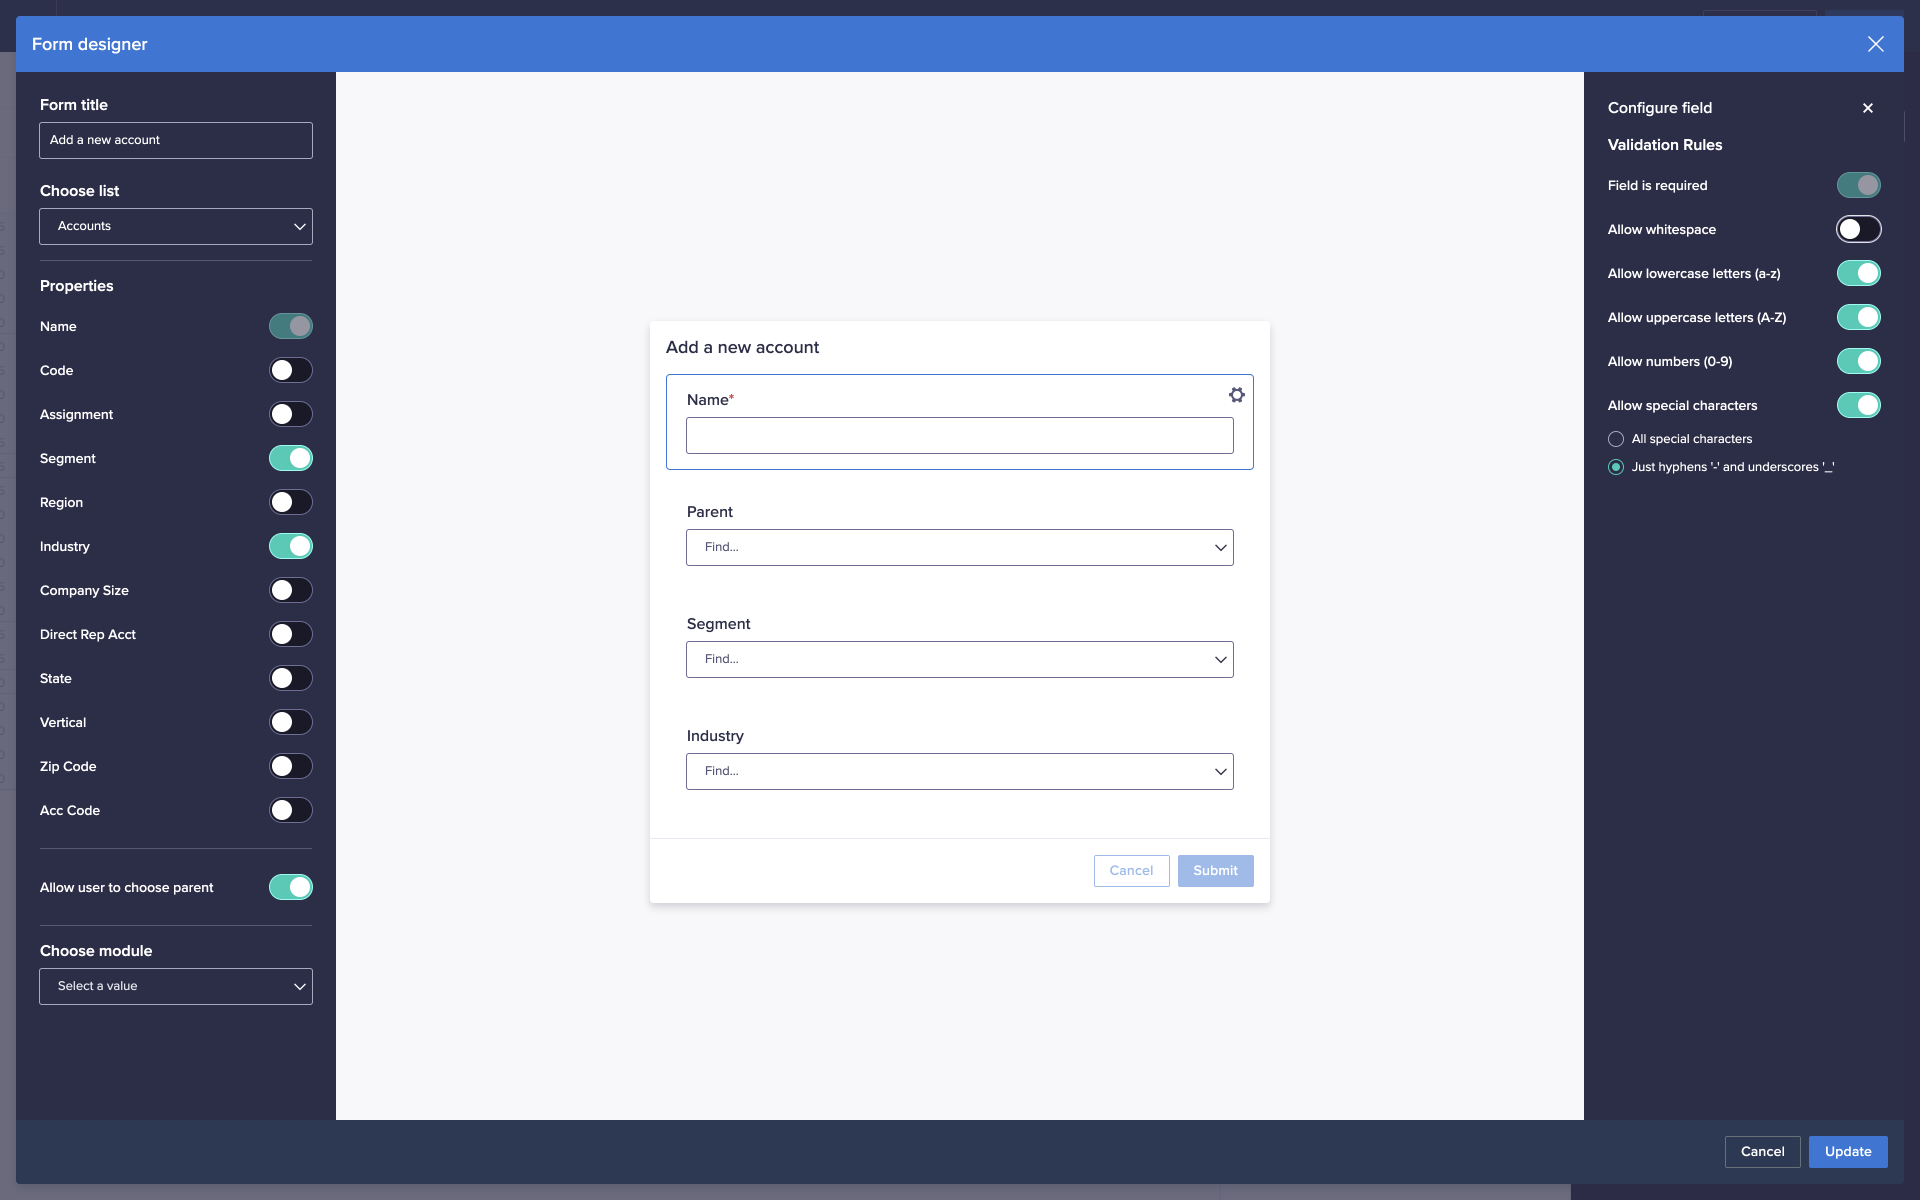 The Form designer window. In the Validation Rules panel, several options have been toggled, limiting the characters that can be entered into the Name field on the form.